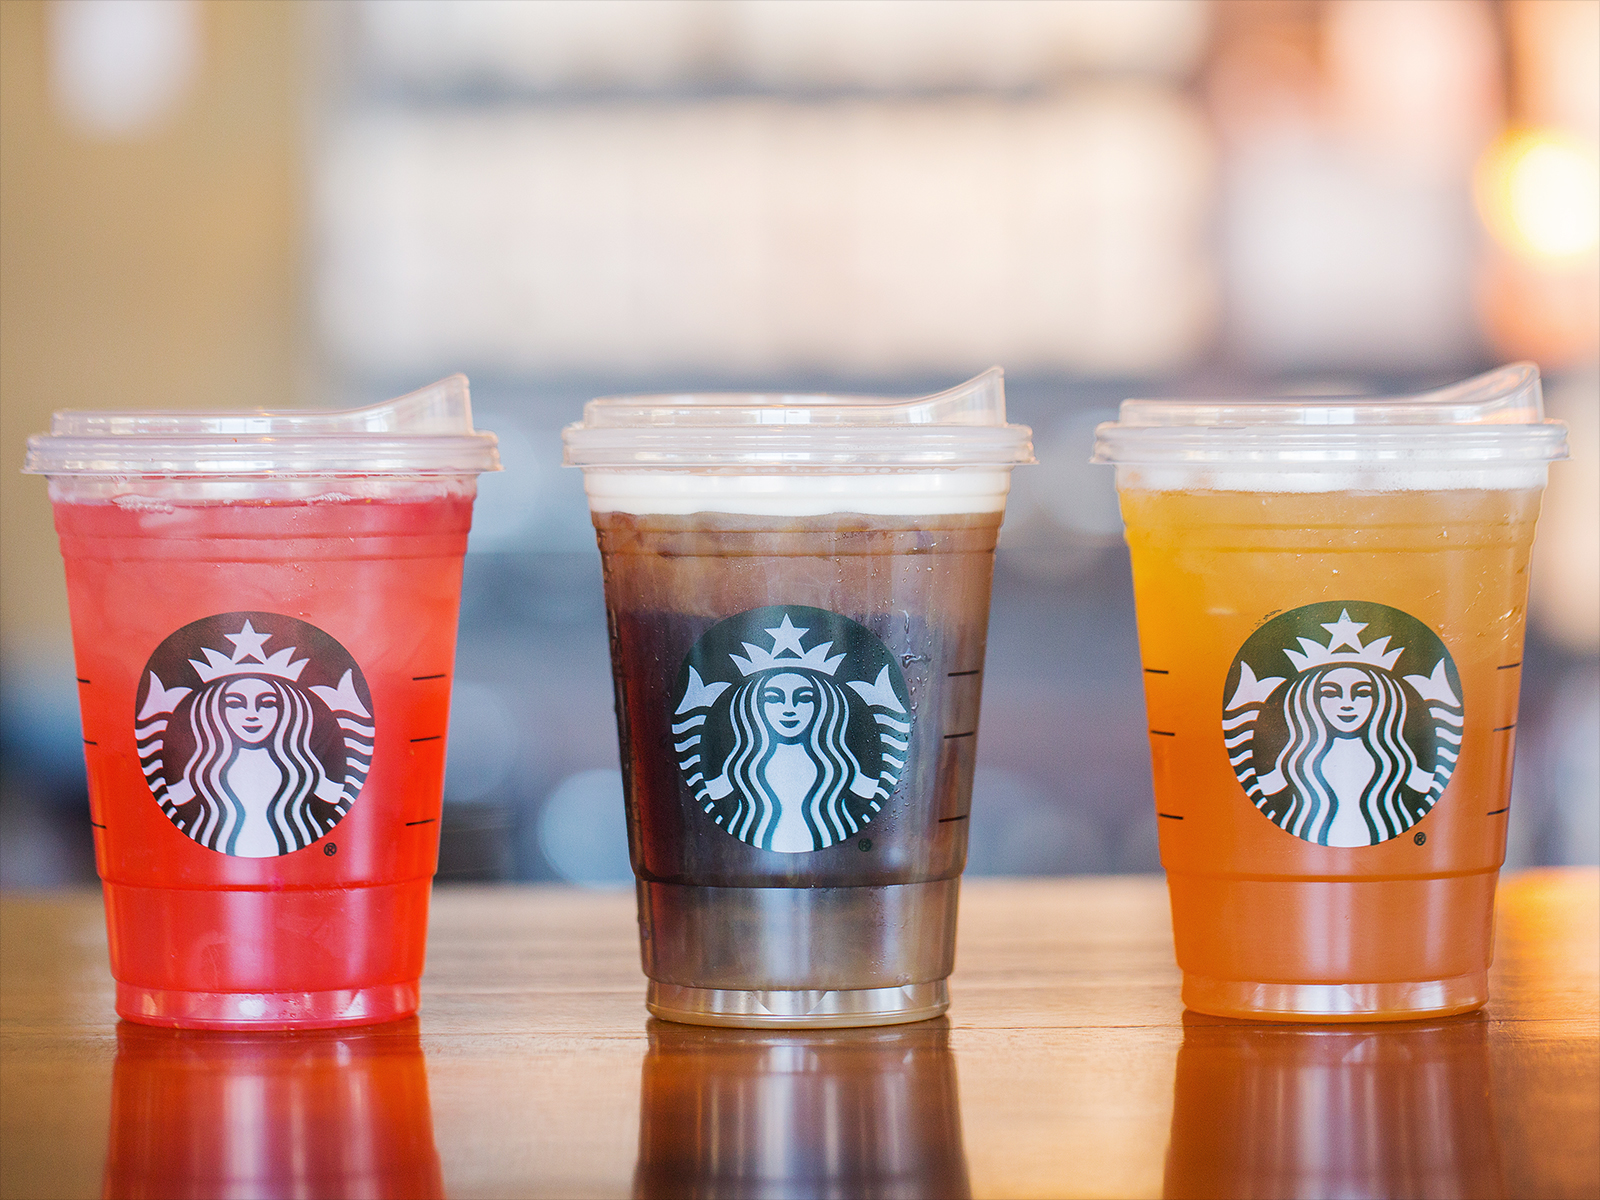 Starbucks will start rolling out strawless lids for all drinks in the fall.